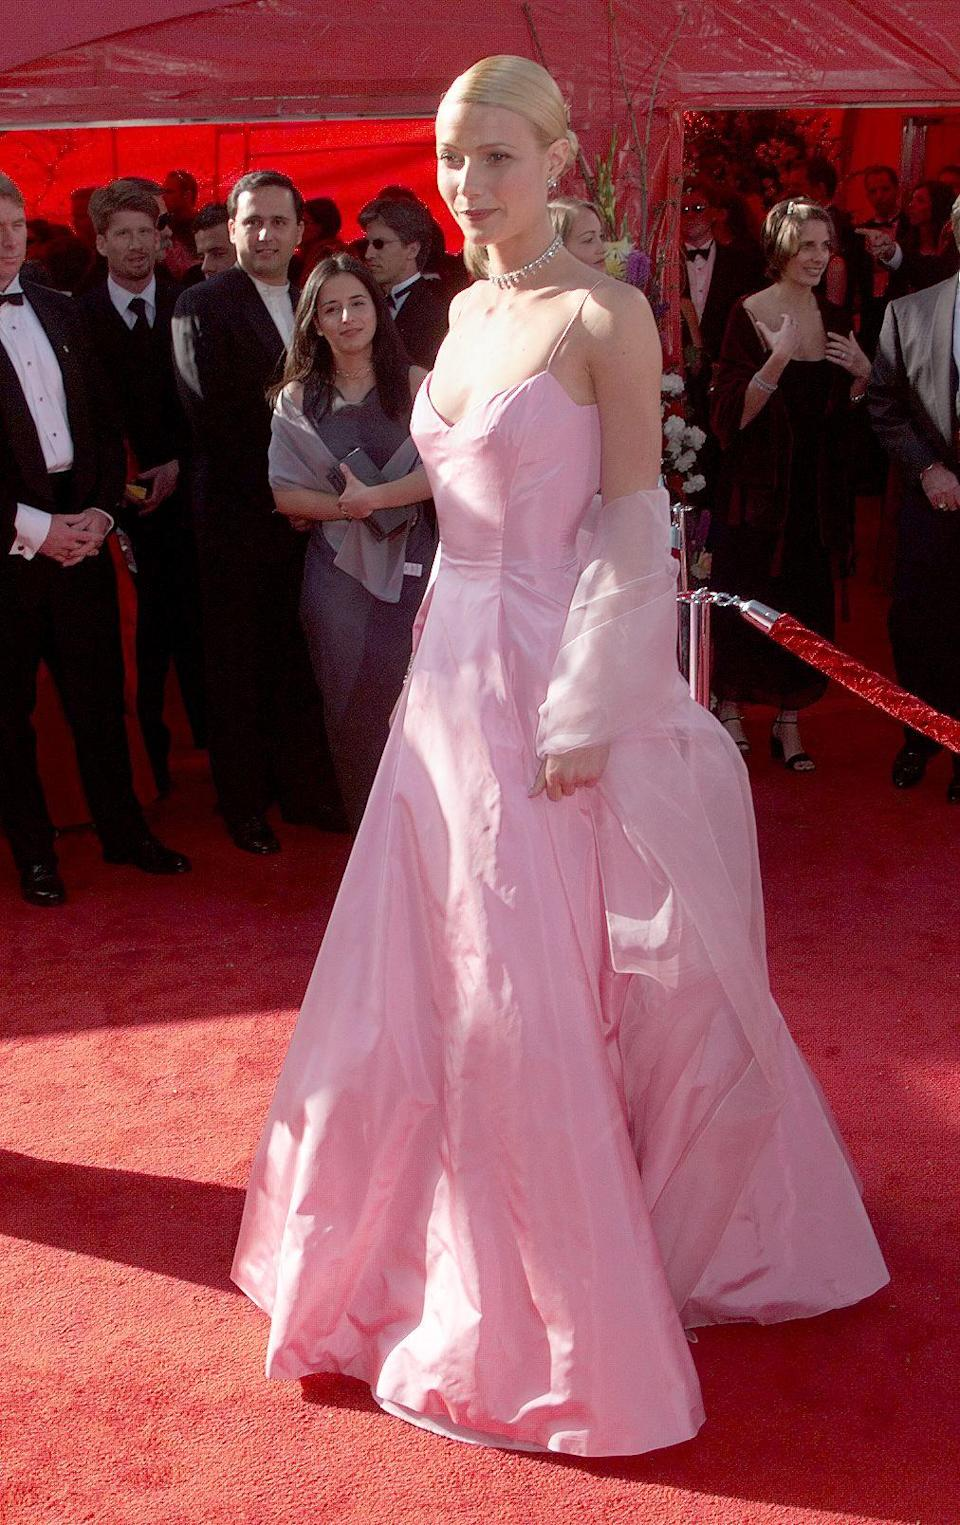 The American actress walked the red carpet in this baby pink number in 1999, to pick up her best actress Oscar for 'Shakespeare in Love'. Over 10 years later, Gwyneth revealed she had kept hold of the dress to pass on to her daughter, Apple.